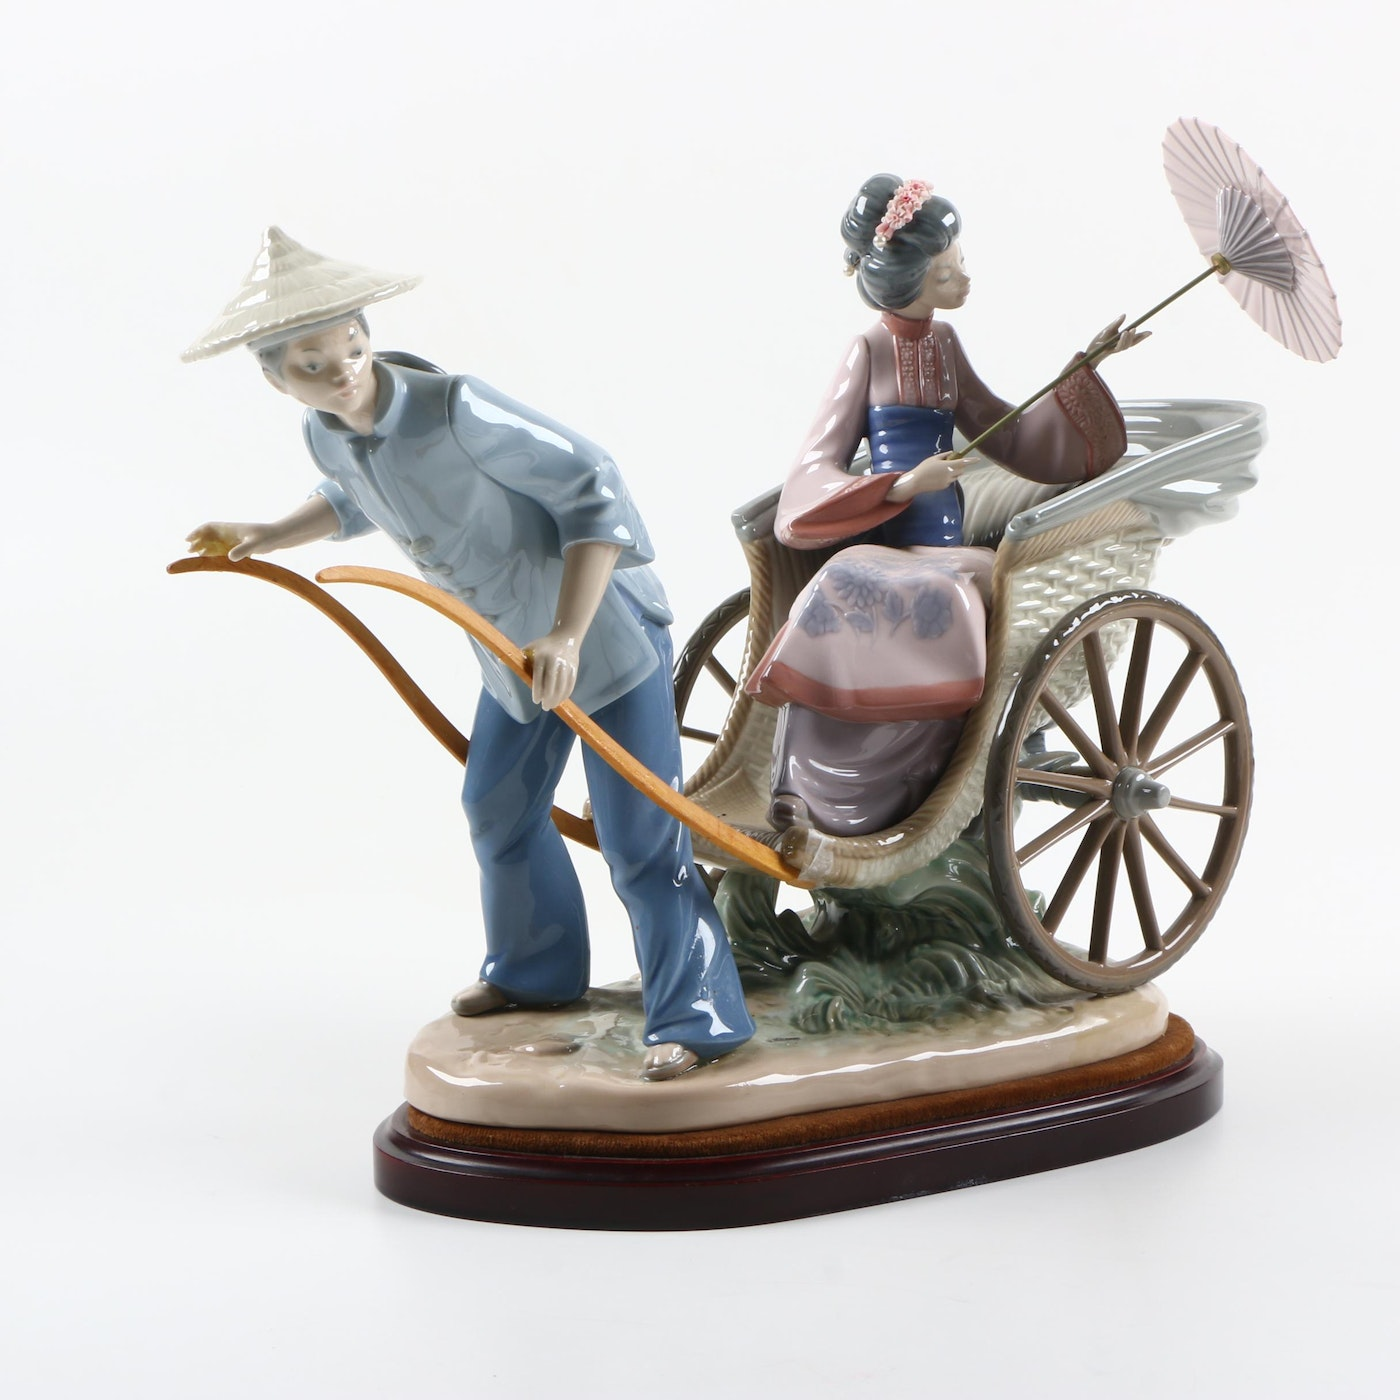 Lladro rickshaw ride figurine ebth - Consider including lladro porcelain figurines home decoration ...